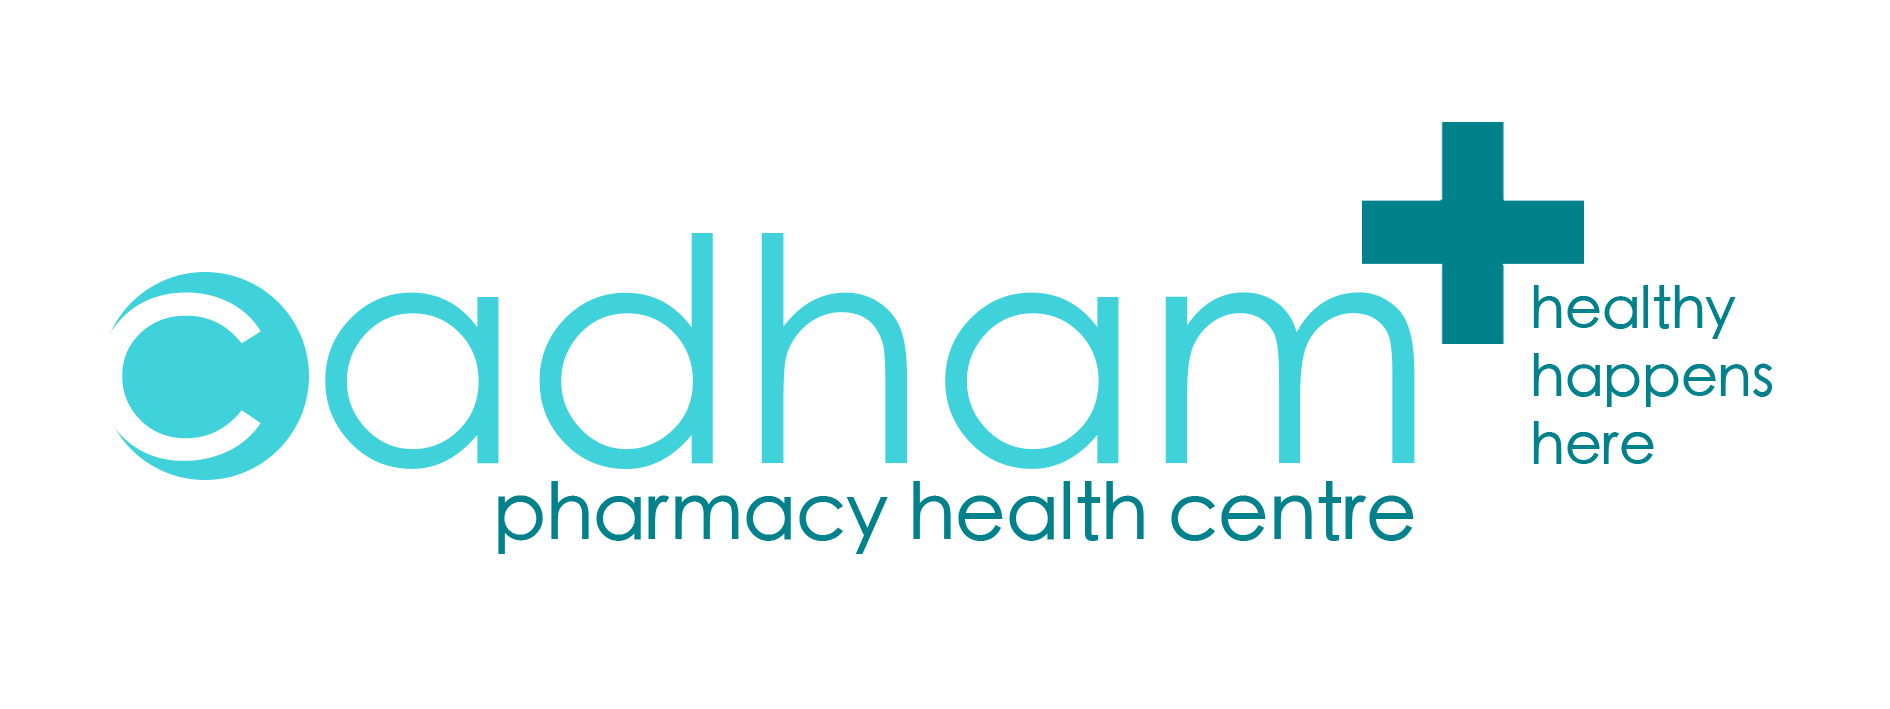 Cadham Pharmacy